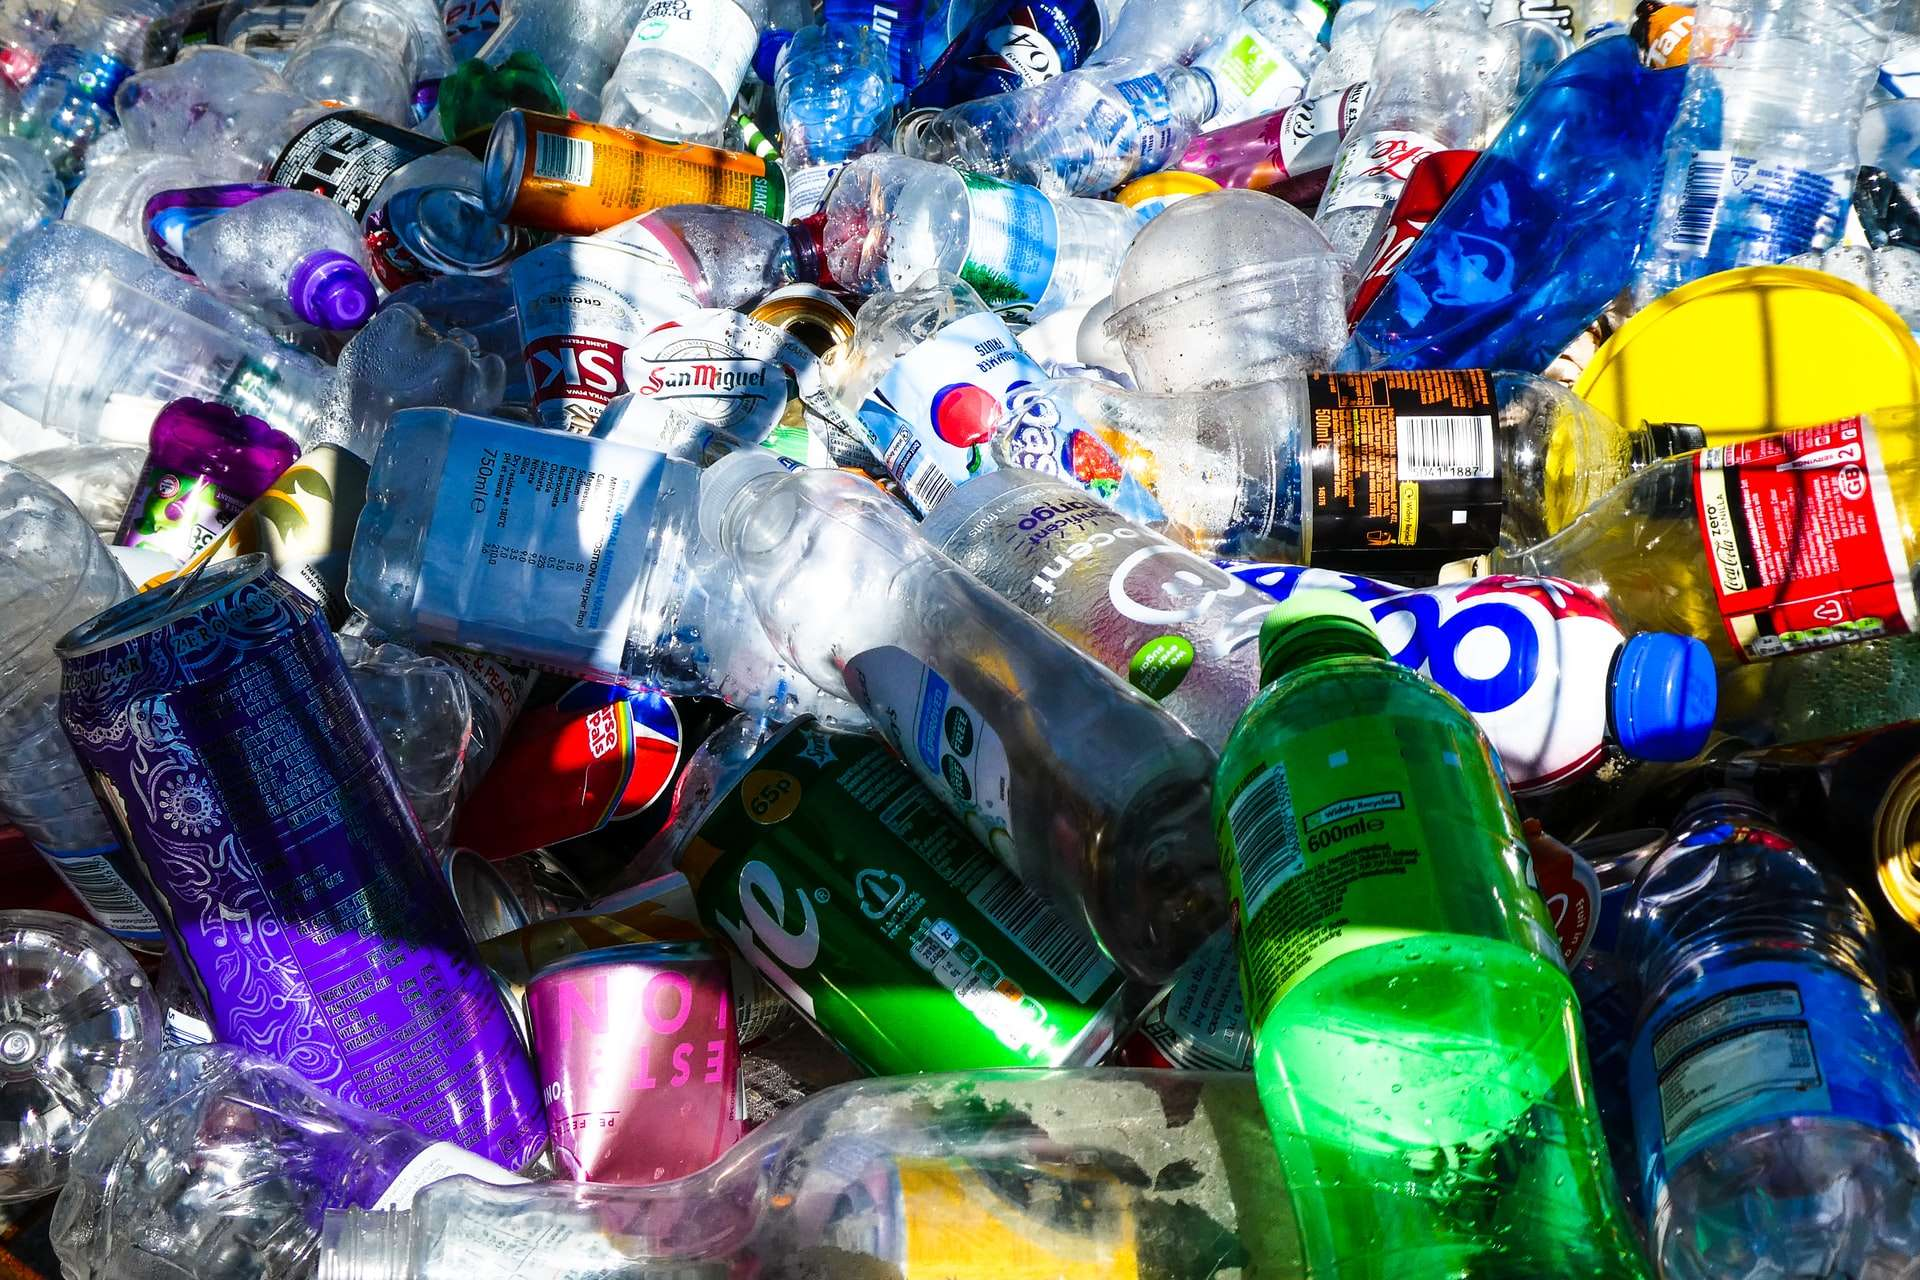 Victorian waste reduction grants